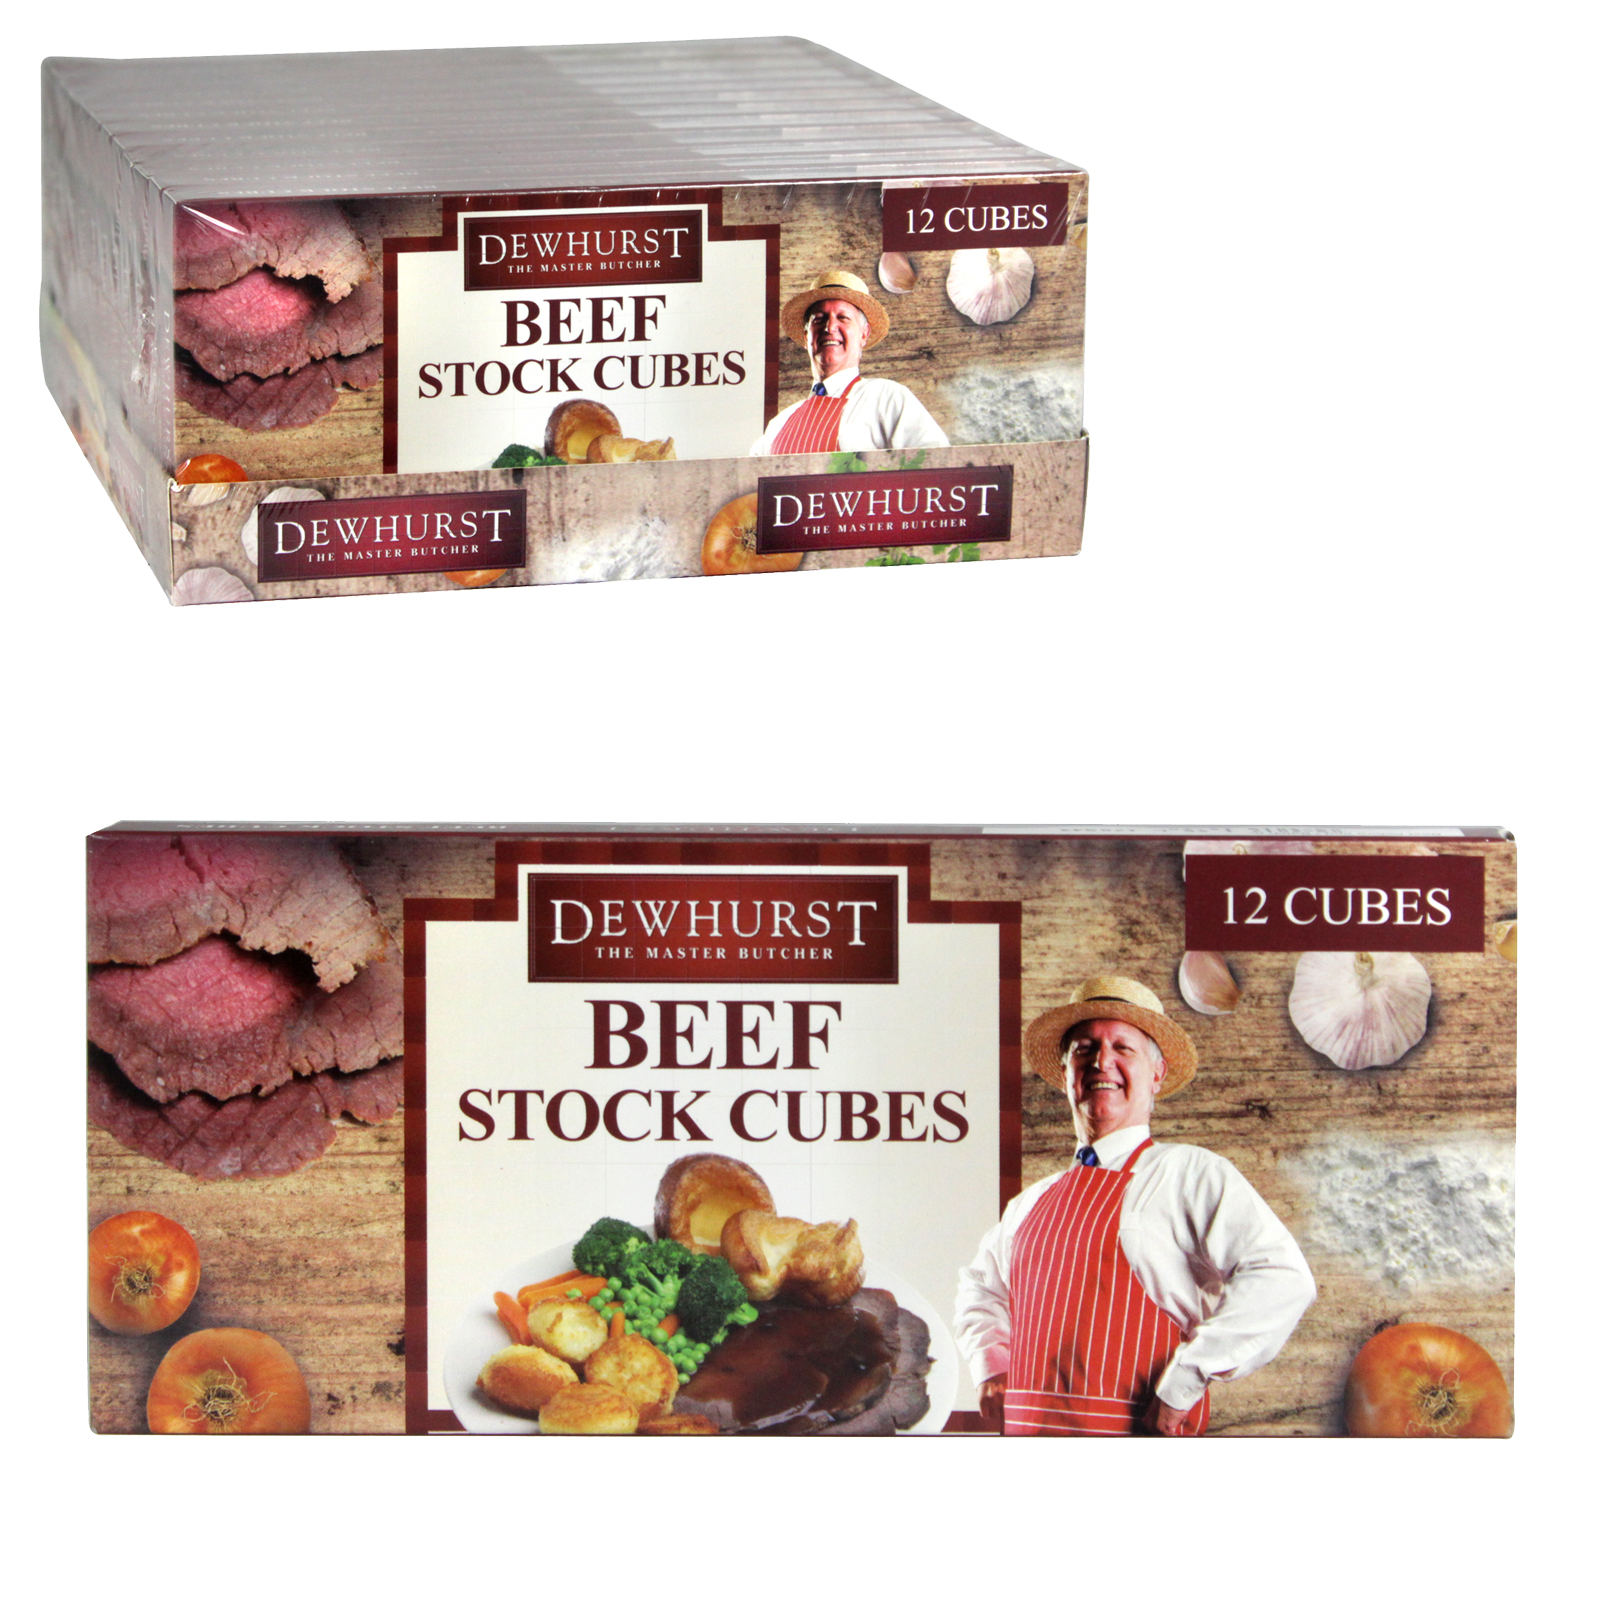 DEWHURST BEEF STOCK CUBES 12S X12